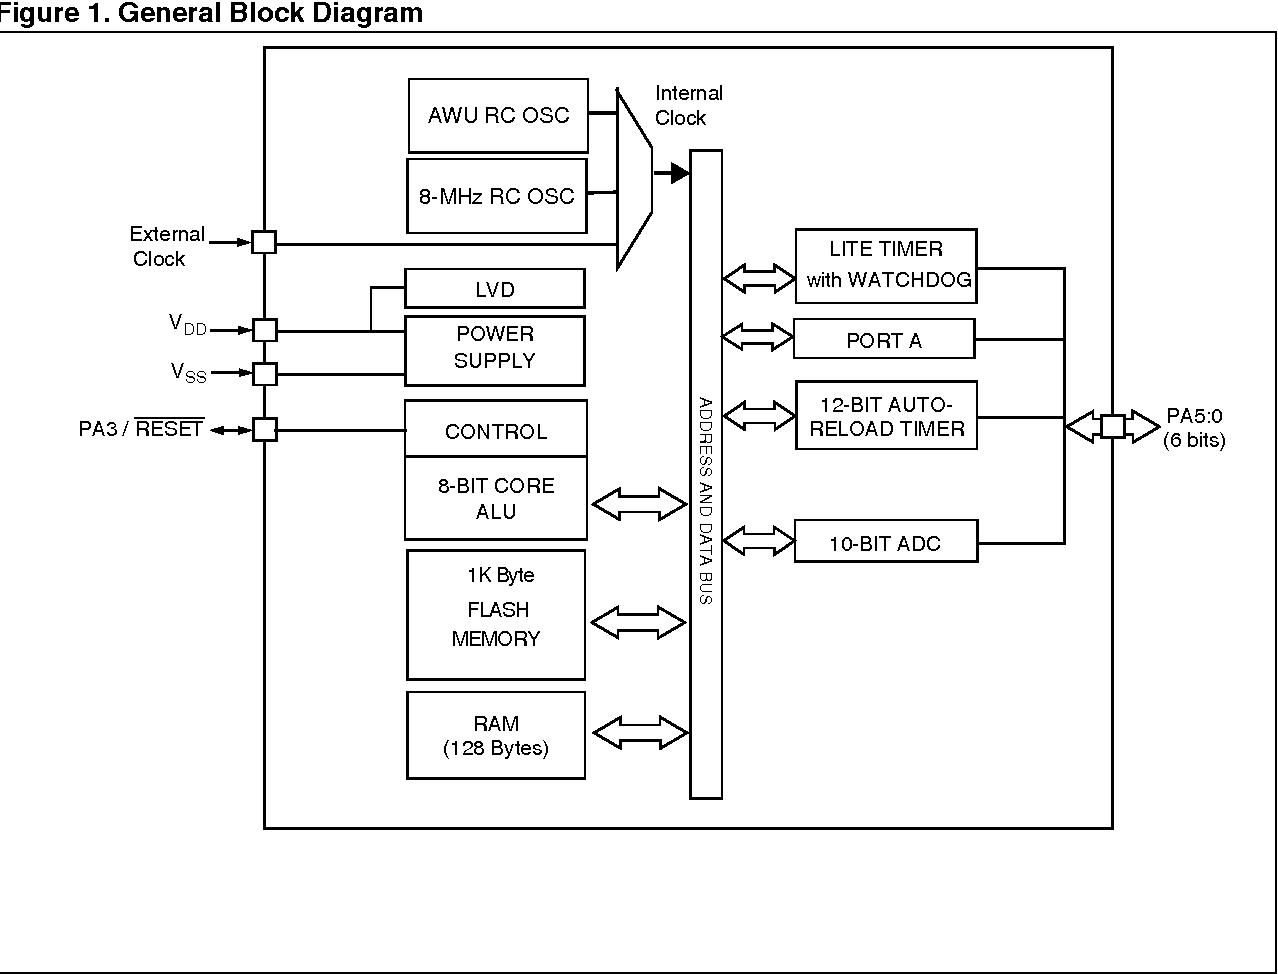 8 Bit Adc Circuit Diagram Schematic Diagrams Alu St 7 Liteusx Mcu With Single Voltage Flash Memory Eeprom